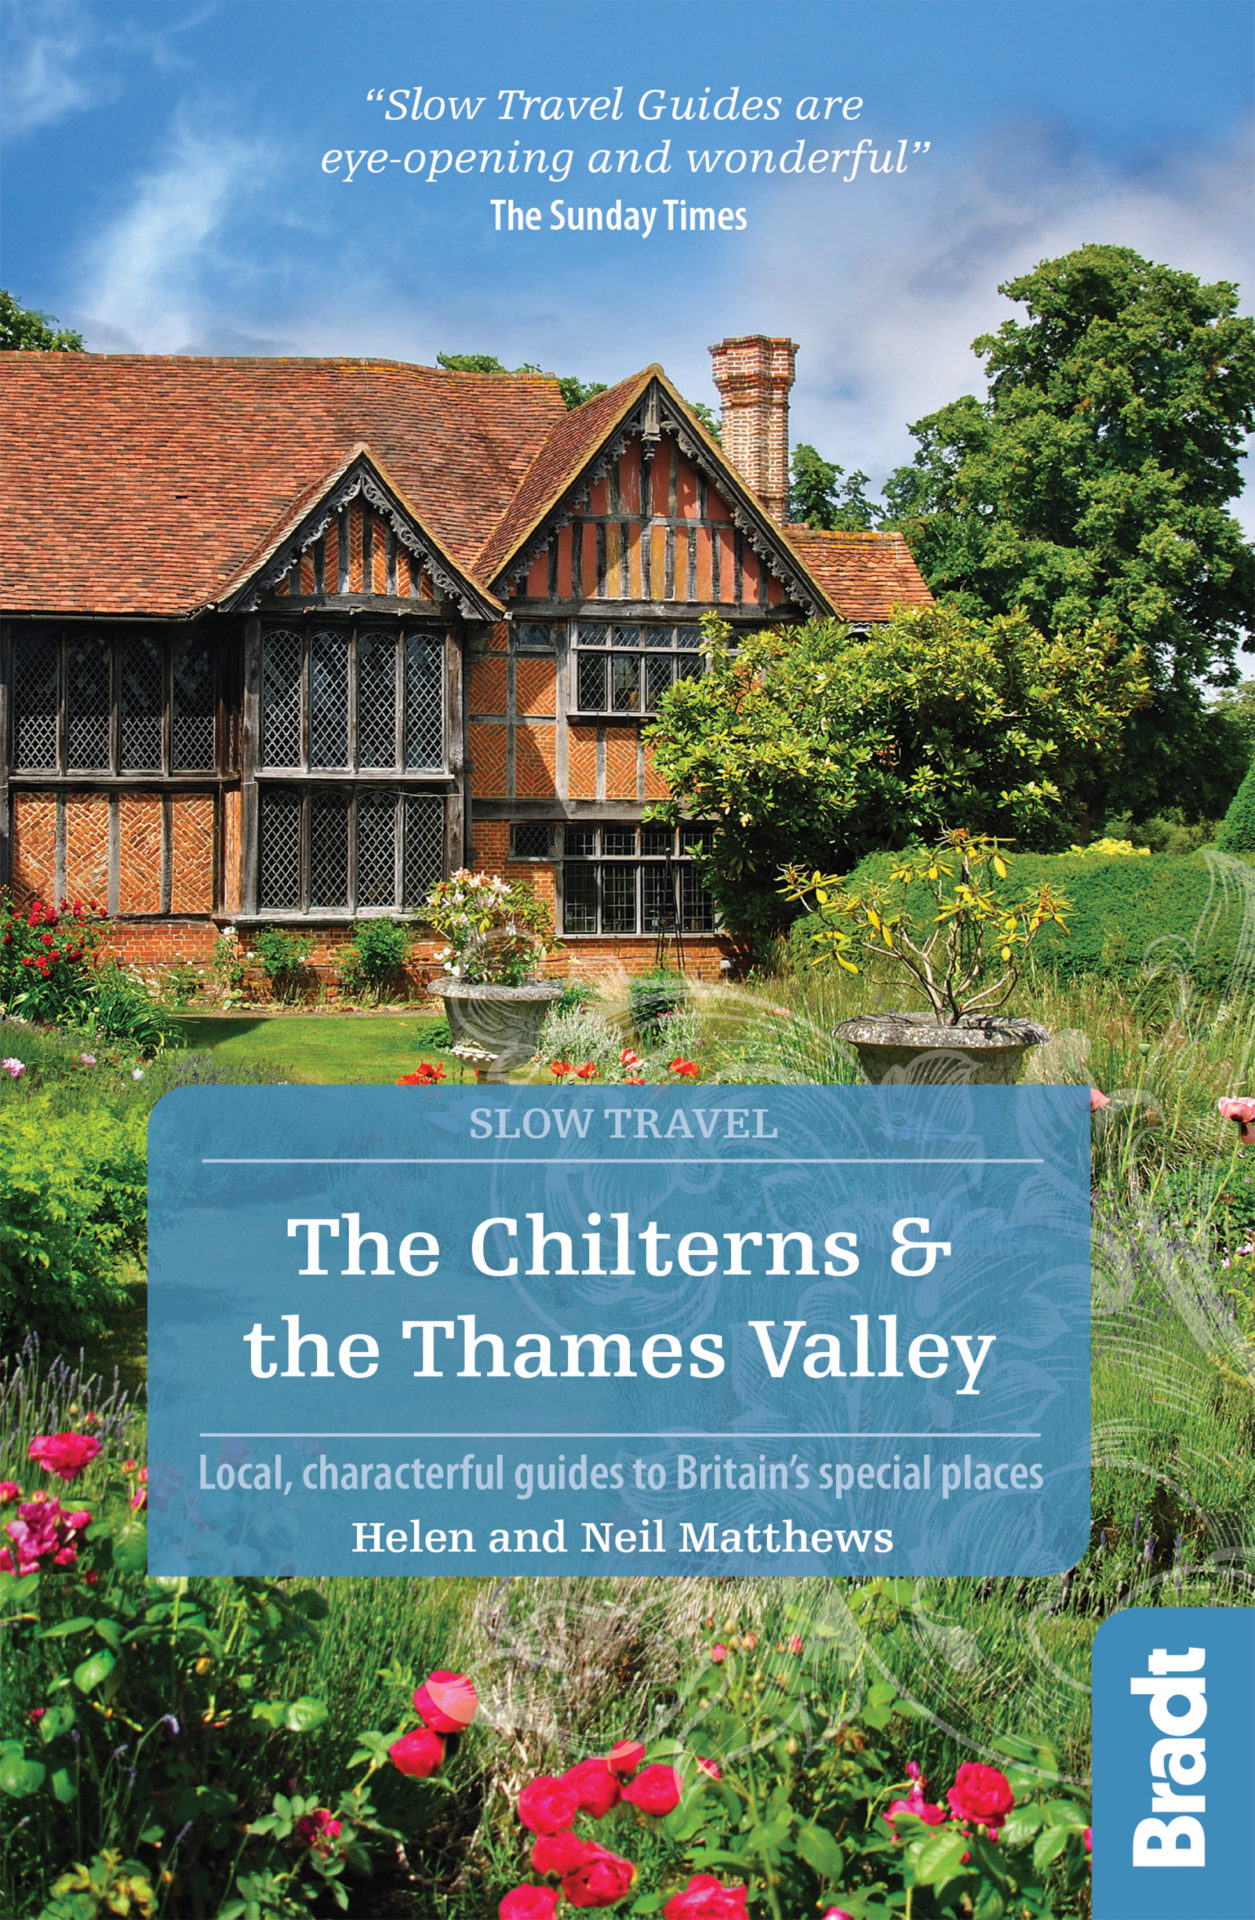 The Chilterns & The Thames Valley (Slow Travel) by Helen & Neil Matthews